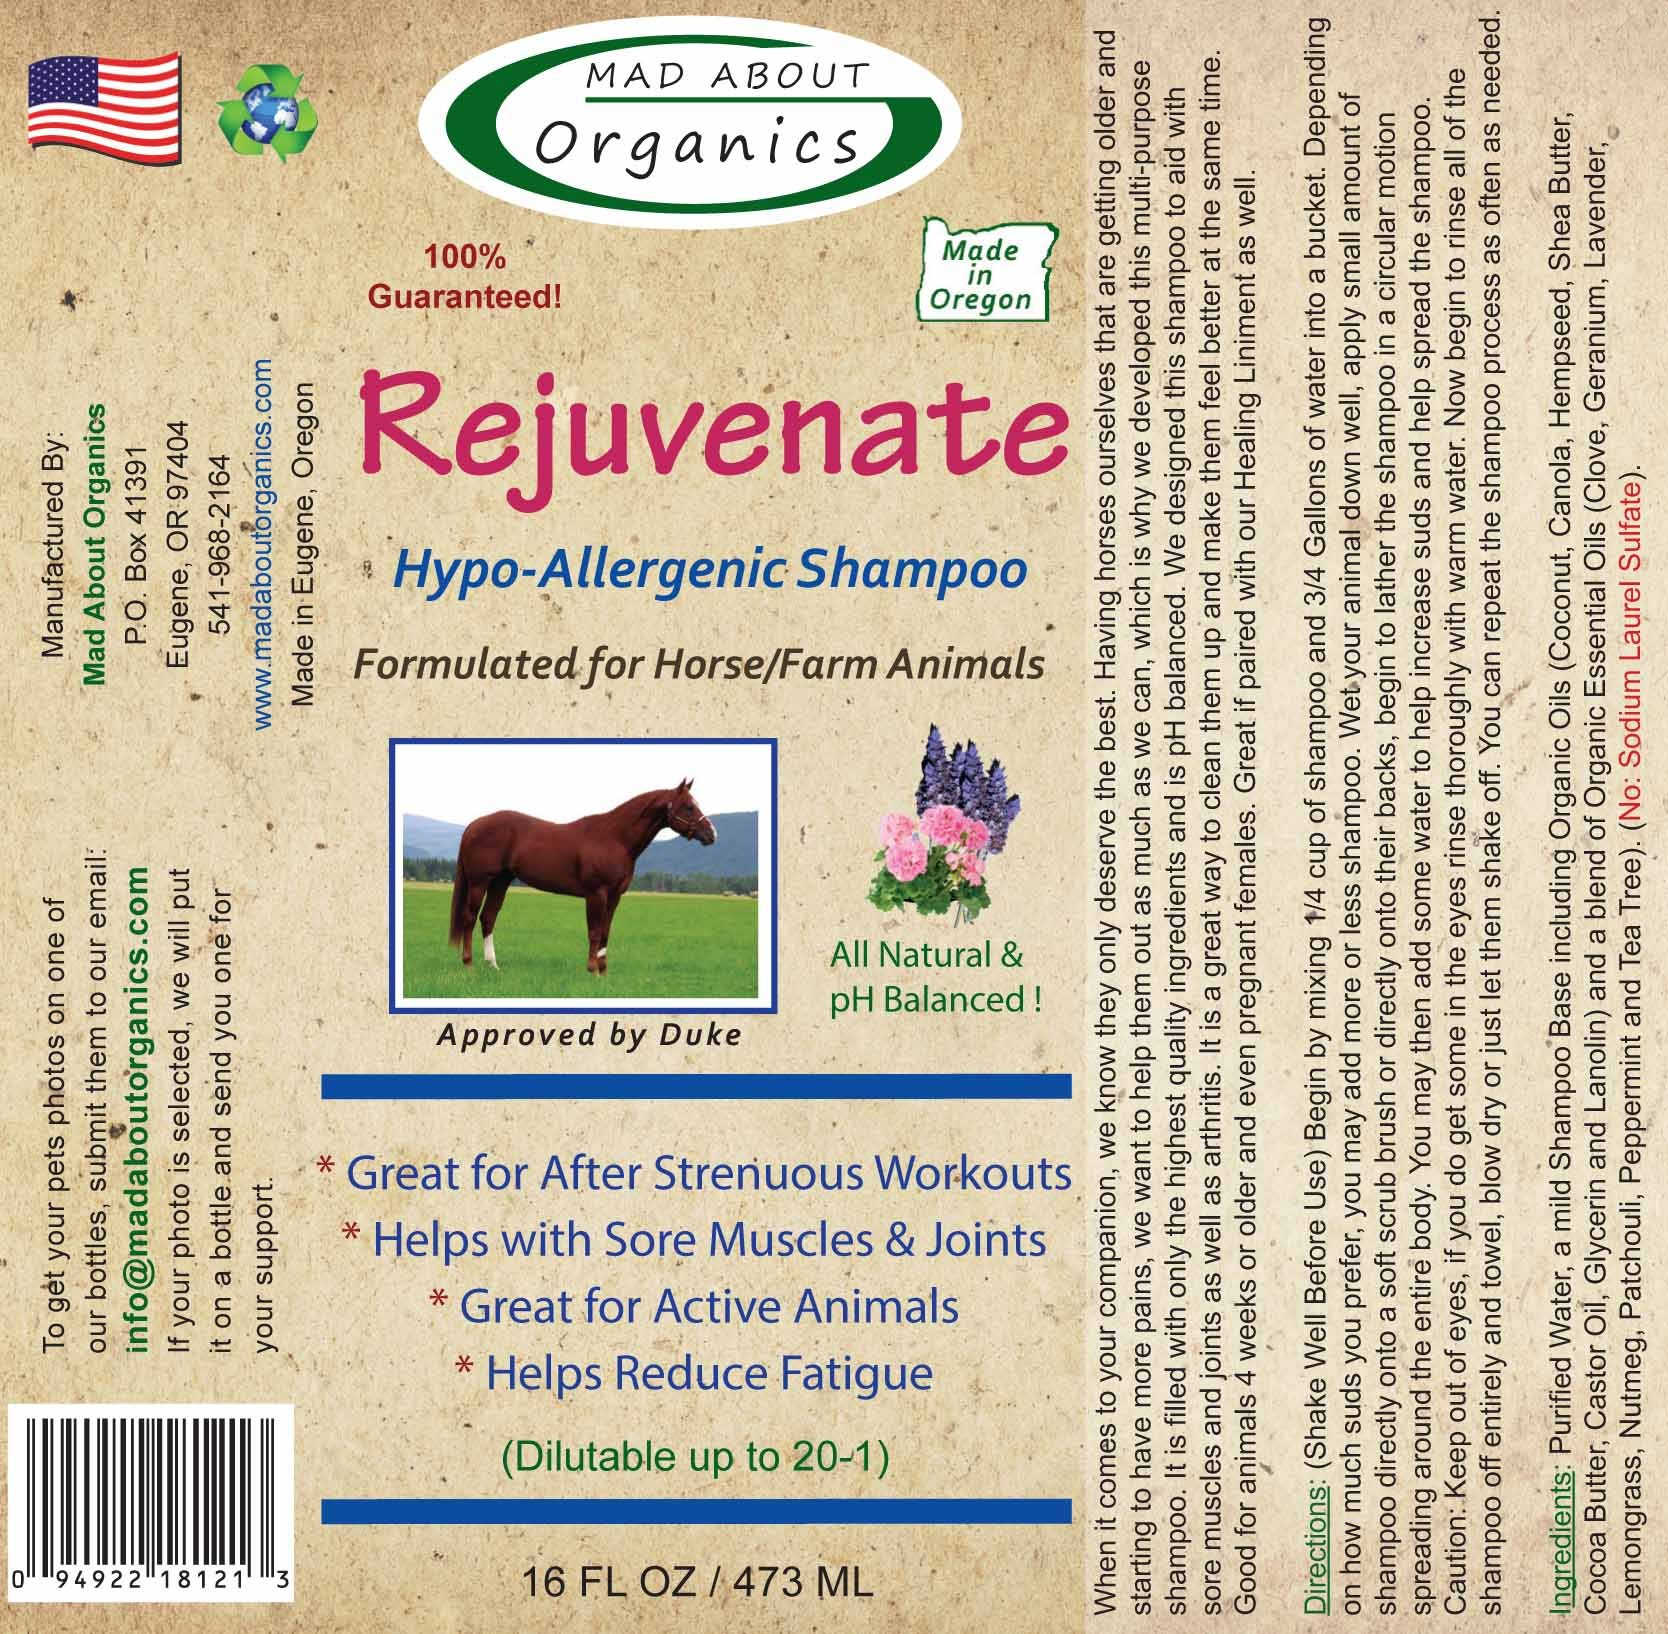 Mad About Organics All Natural Horse/Farm Animal Rejuvenate Hypo-Allergenic Shampoo 16oz by Mad About Organics (Image #2)